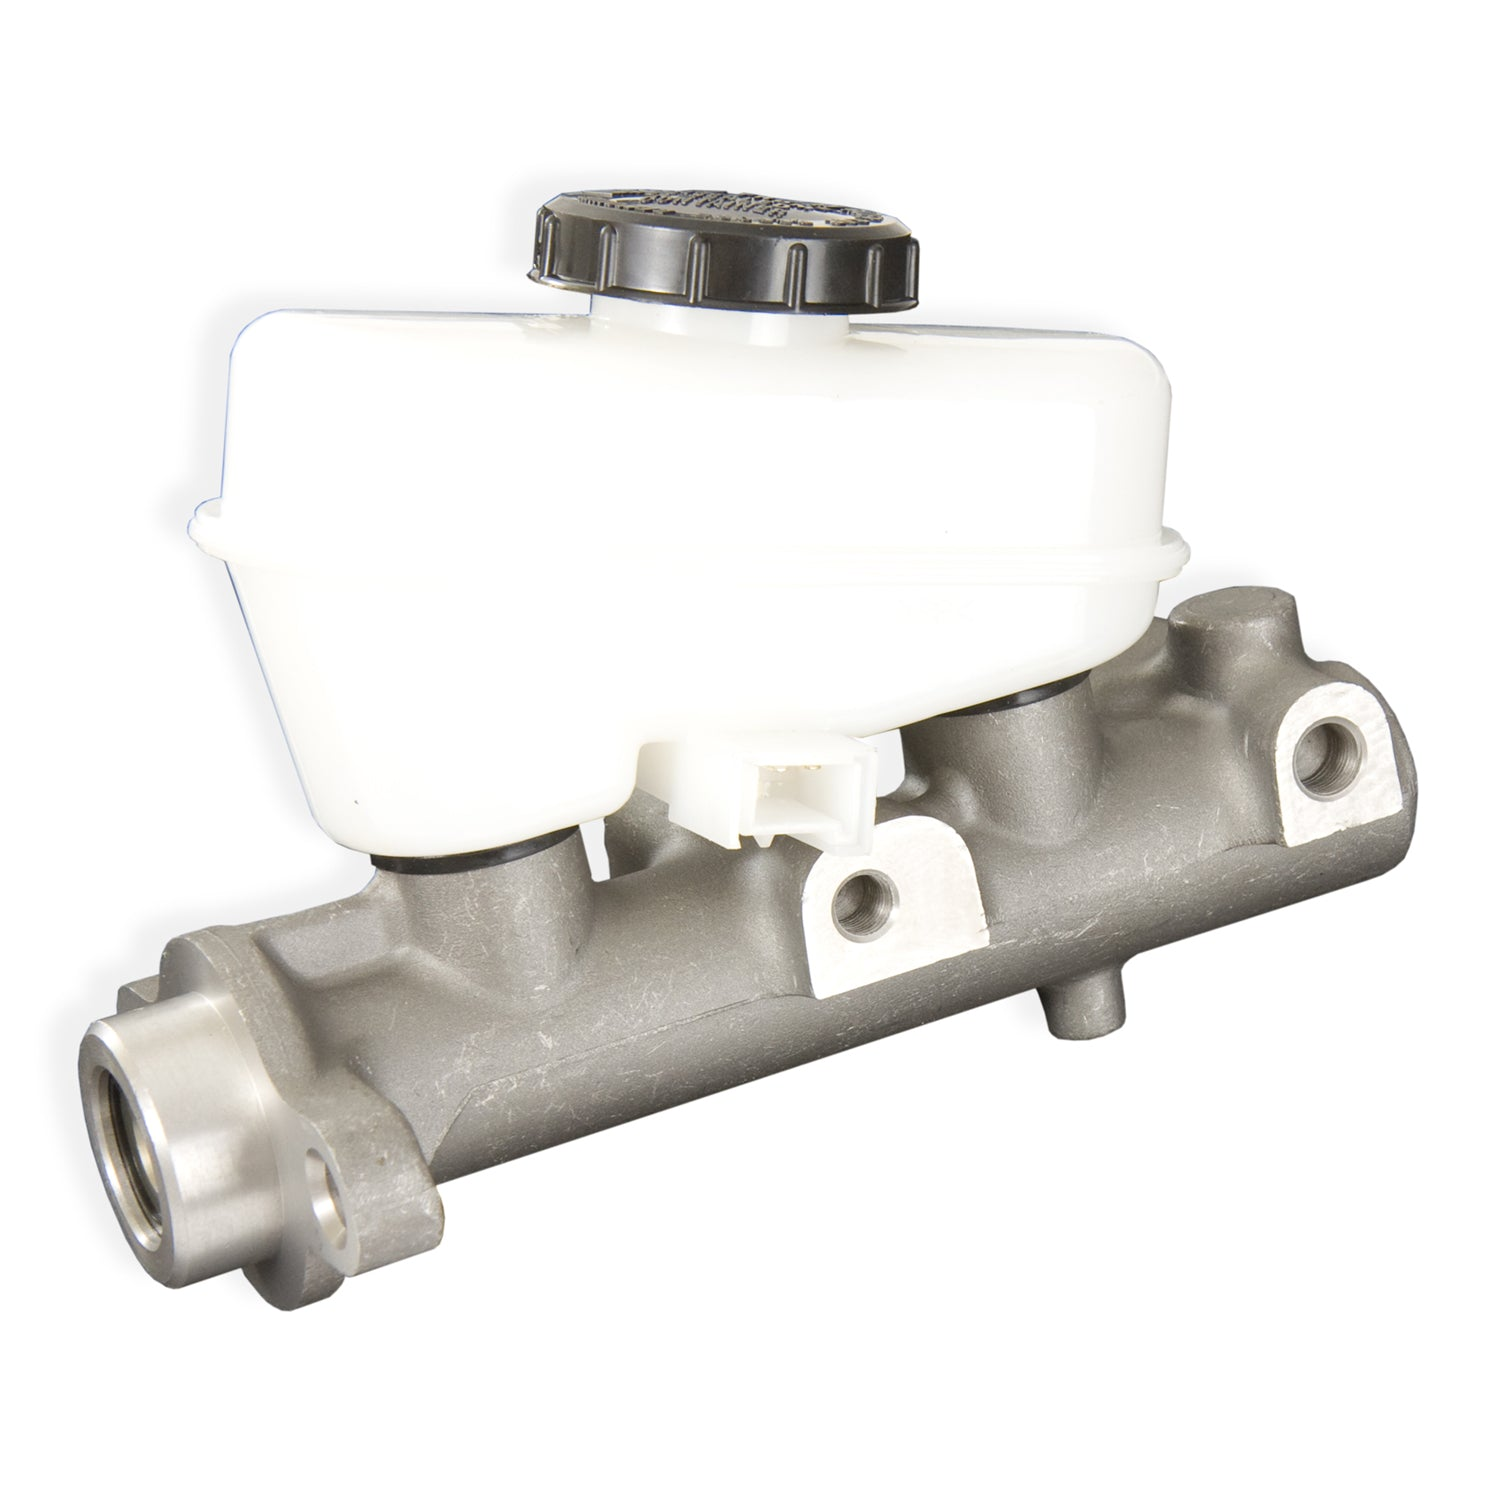 "Maximum Motorsports Master Cylinder, 1994 GT, 1-1/16"" bore, new, 1979-95 Mustang BMC-3"